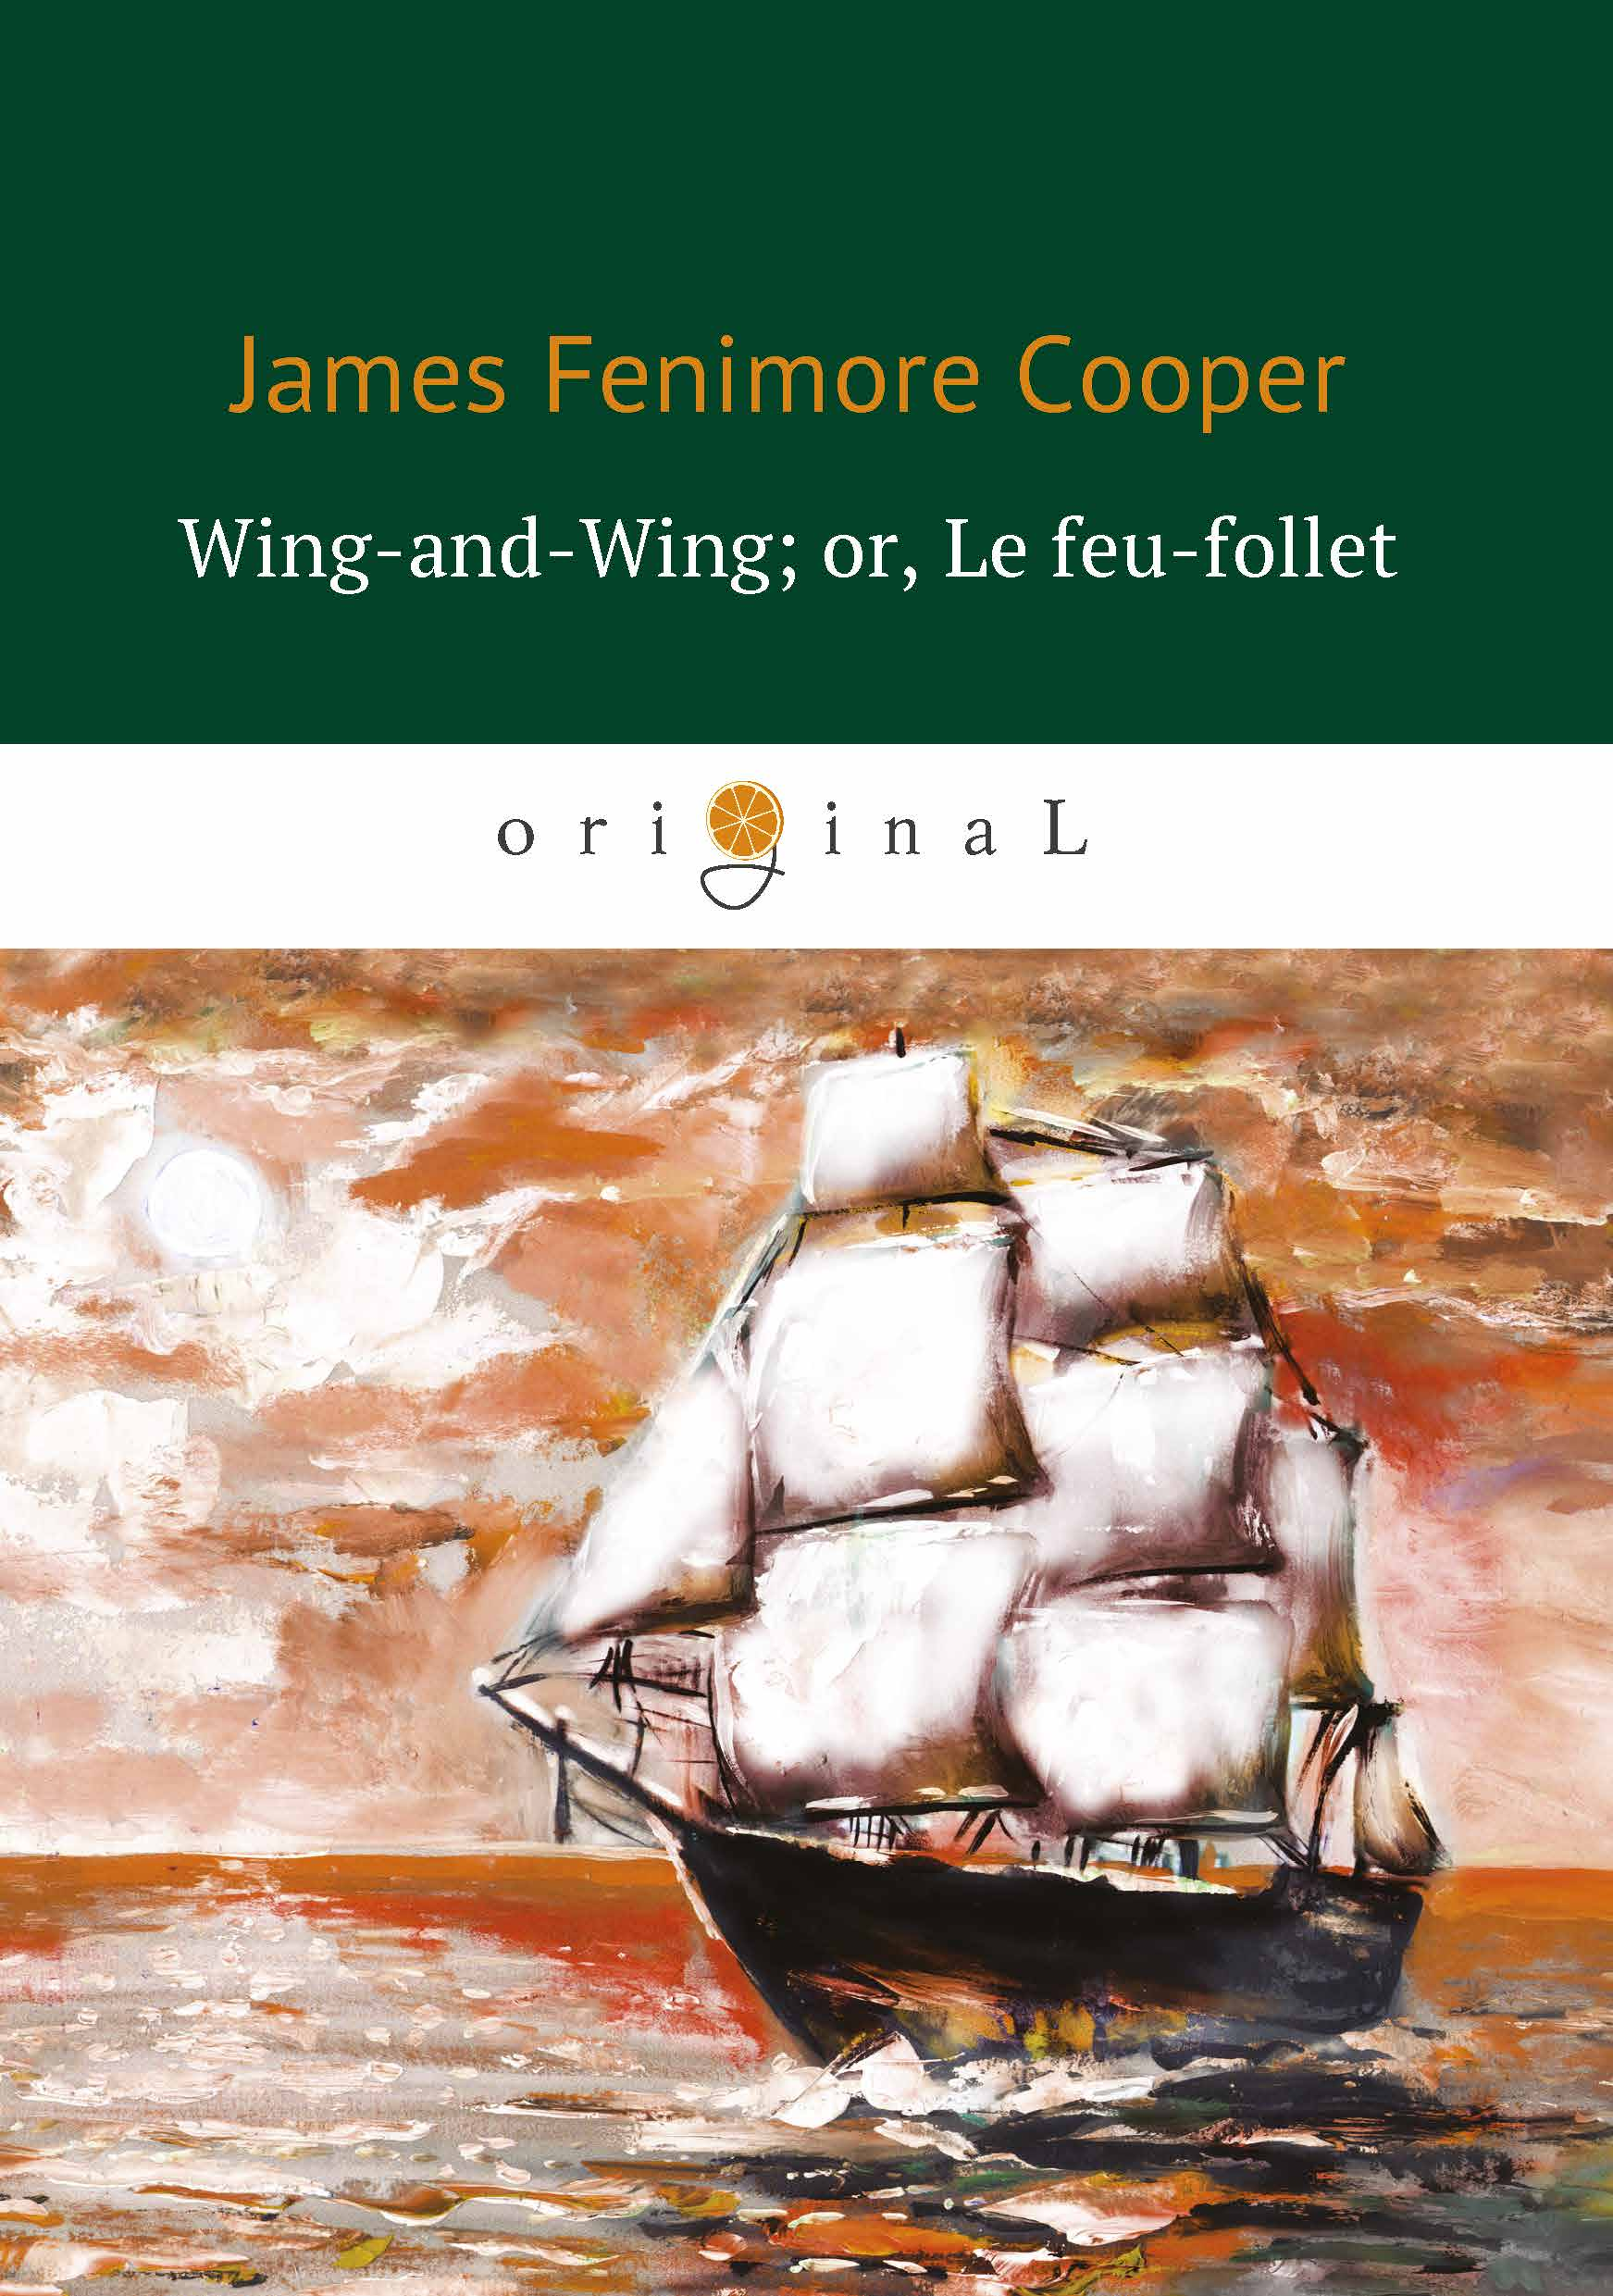 James Fenimore Cooper Wing-and-Wing; or, Le feu-follet / Блуждающий огонёк the norton anthology of american literature 6e v e